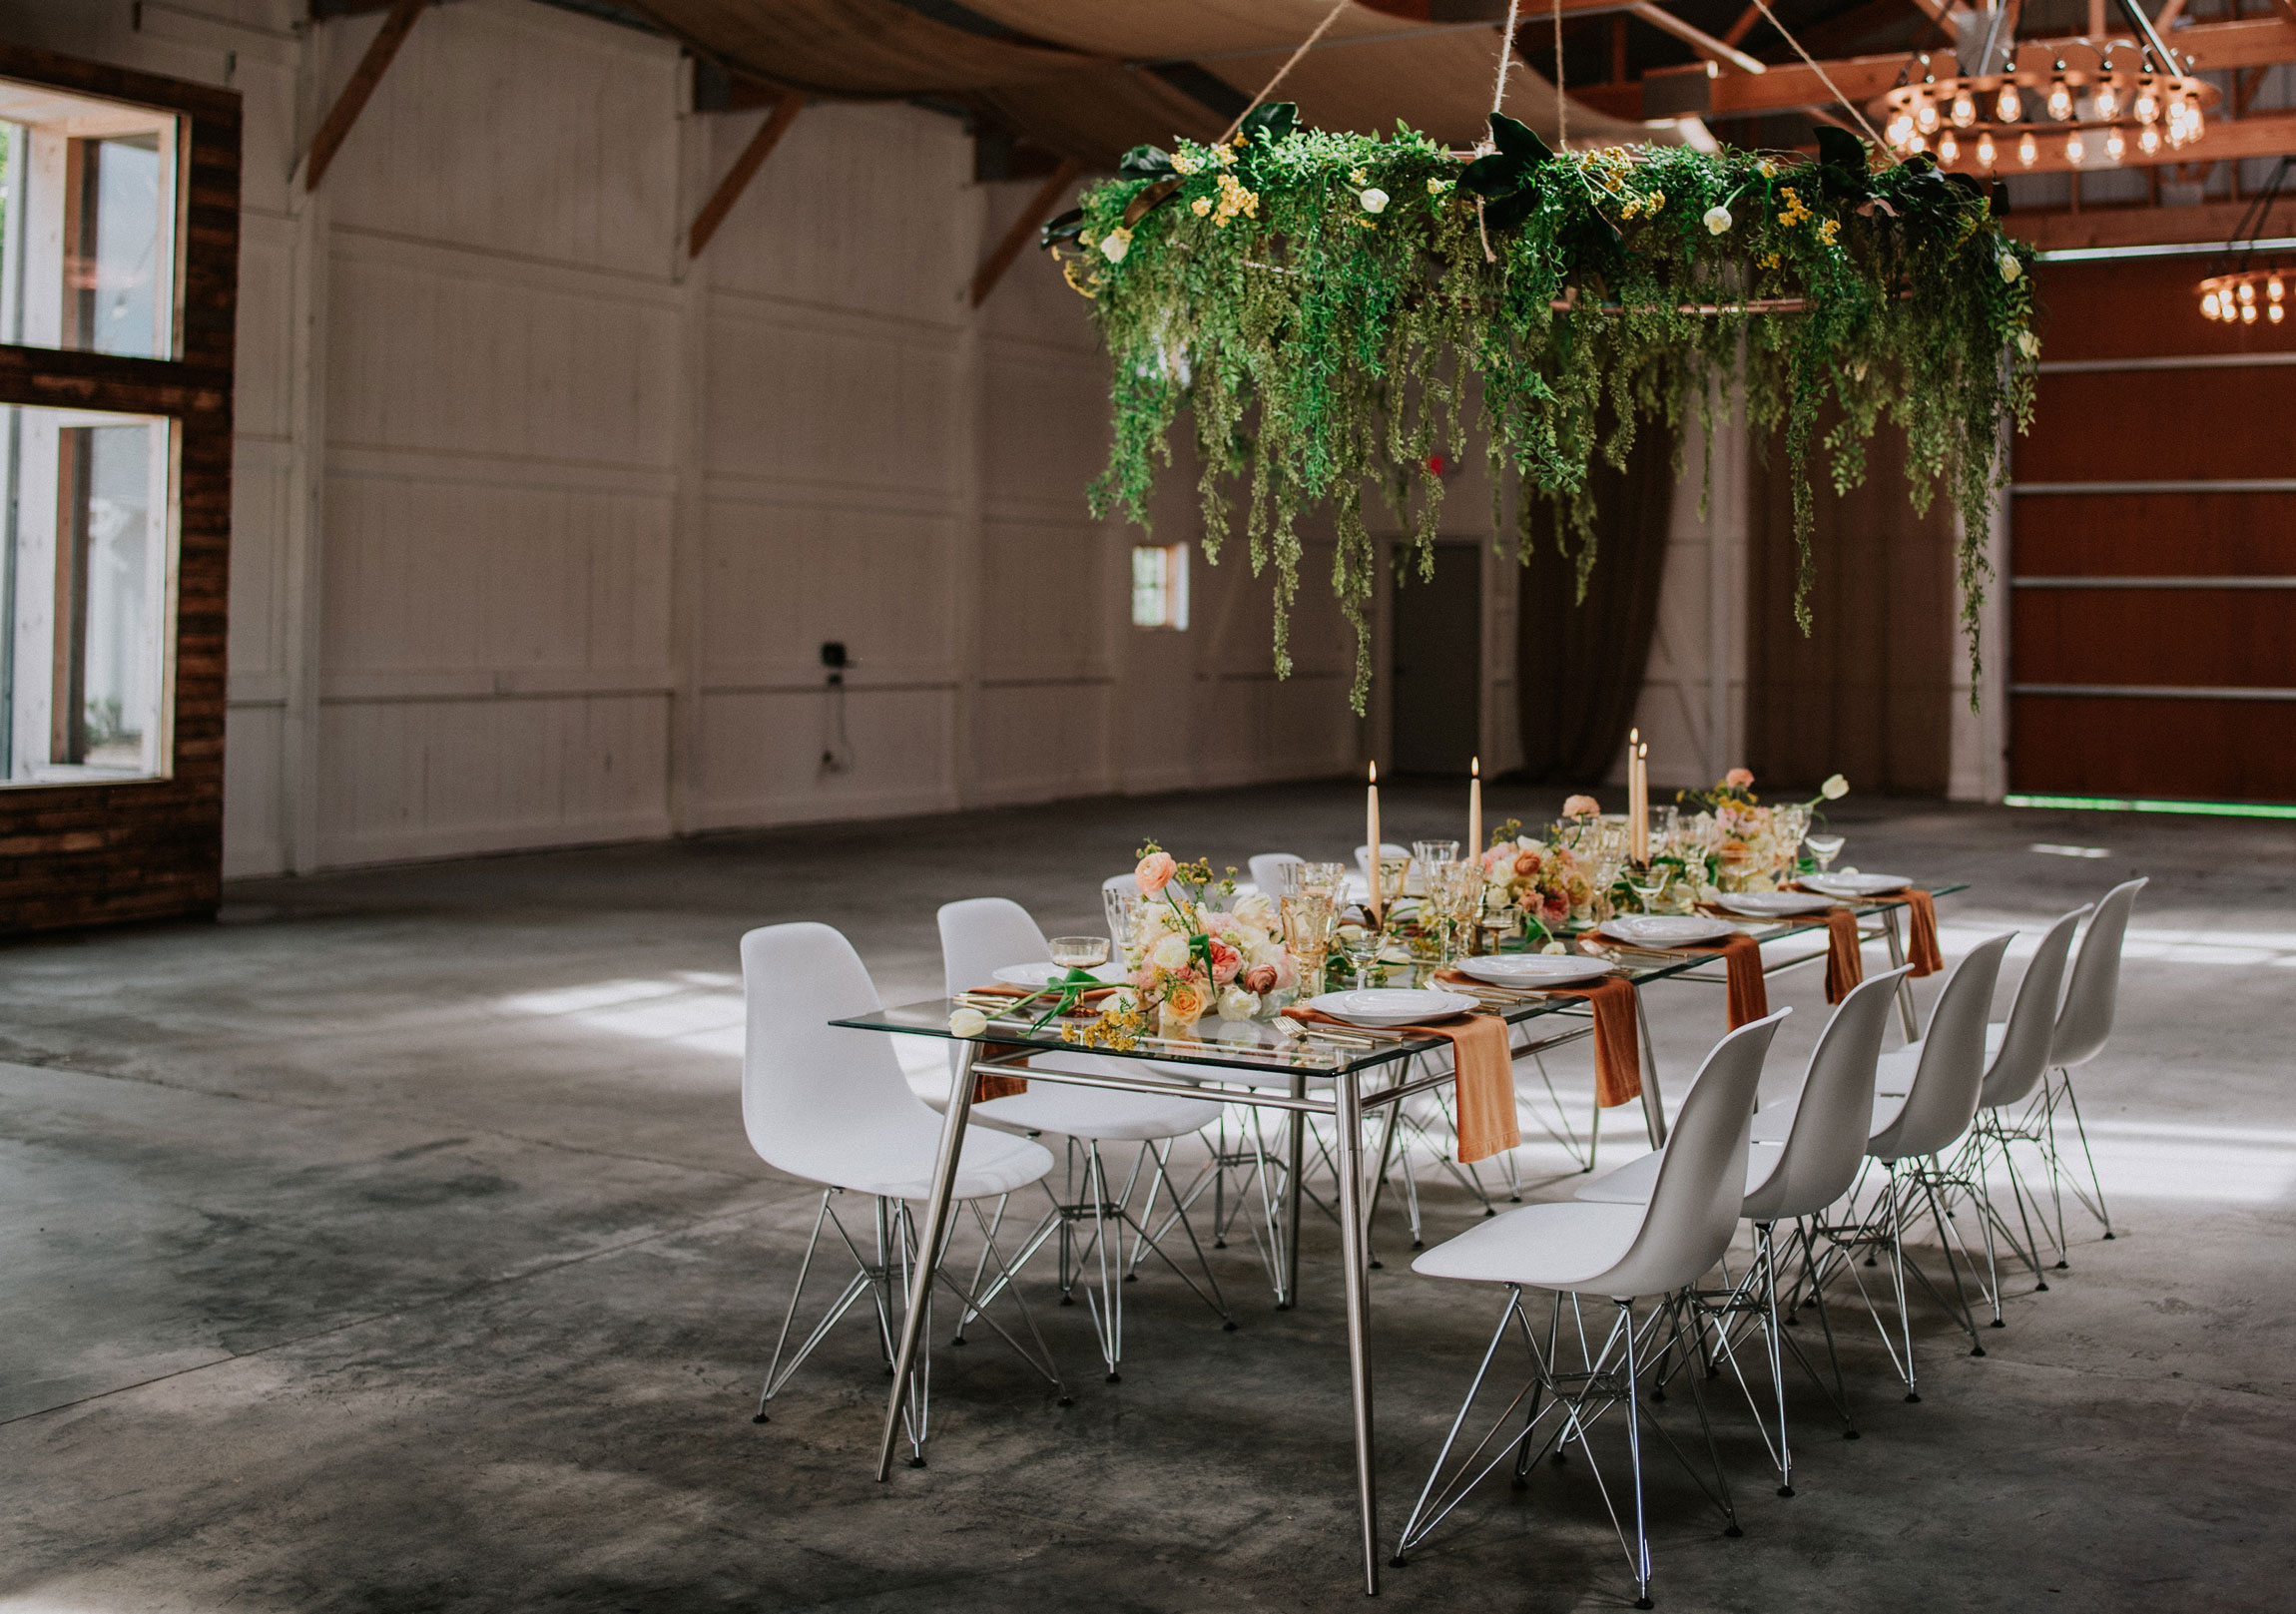 Boxed-&-Burlap-Style-Shoot-Large-View-Tablescape-1_blog-1